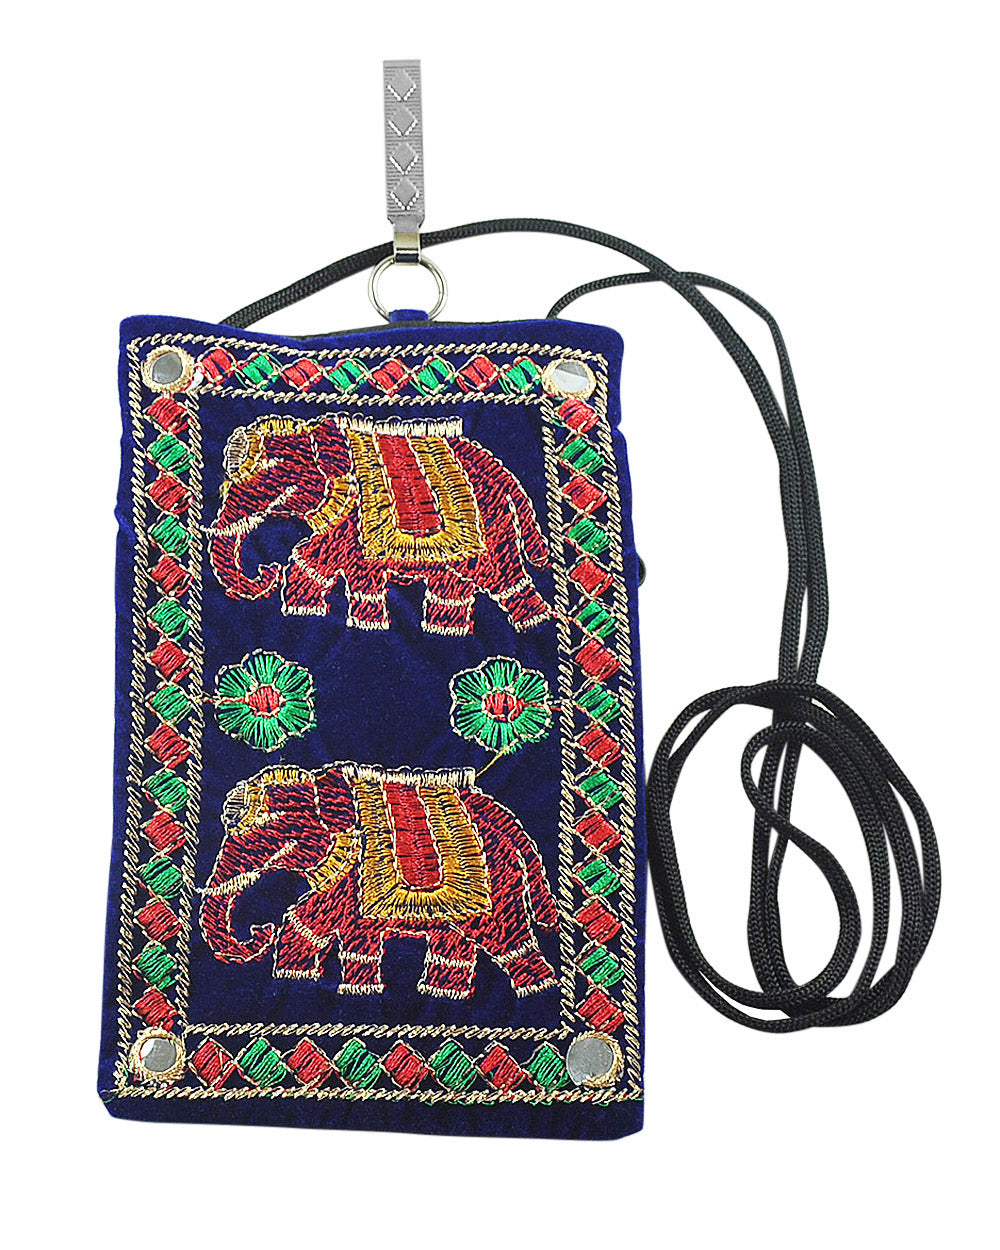 Elephant Bliss and Strength - Embroidery Crossbody Bag